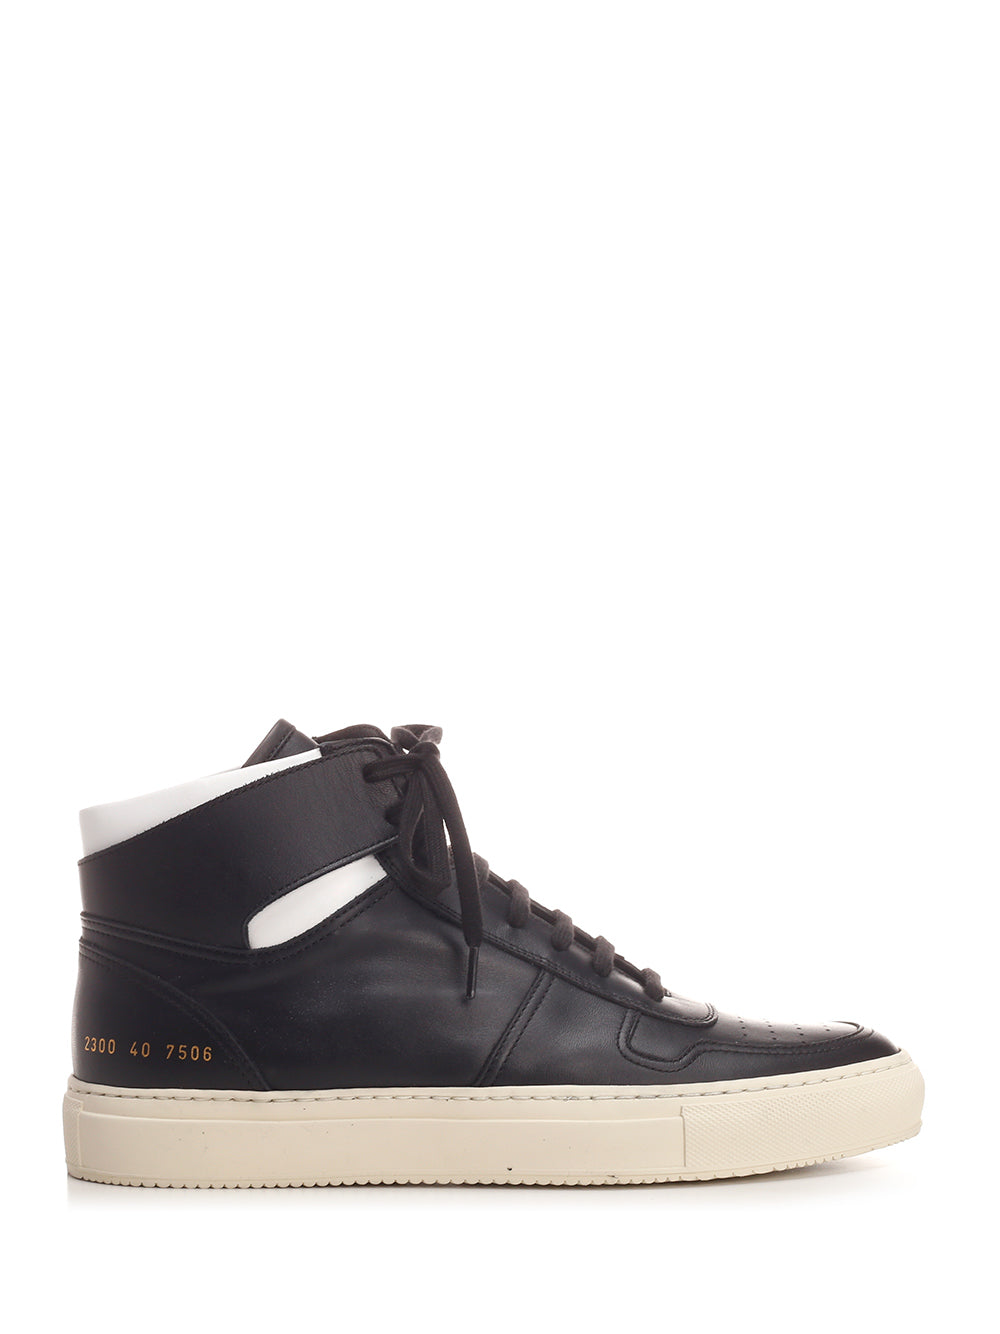 Common Projects Leathers COMMON PROJECTS BBALL HIGH TOP SNEAKERS